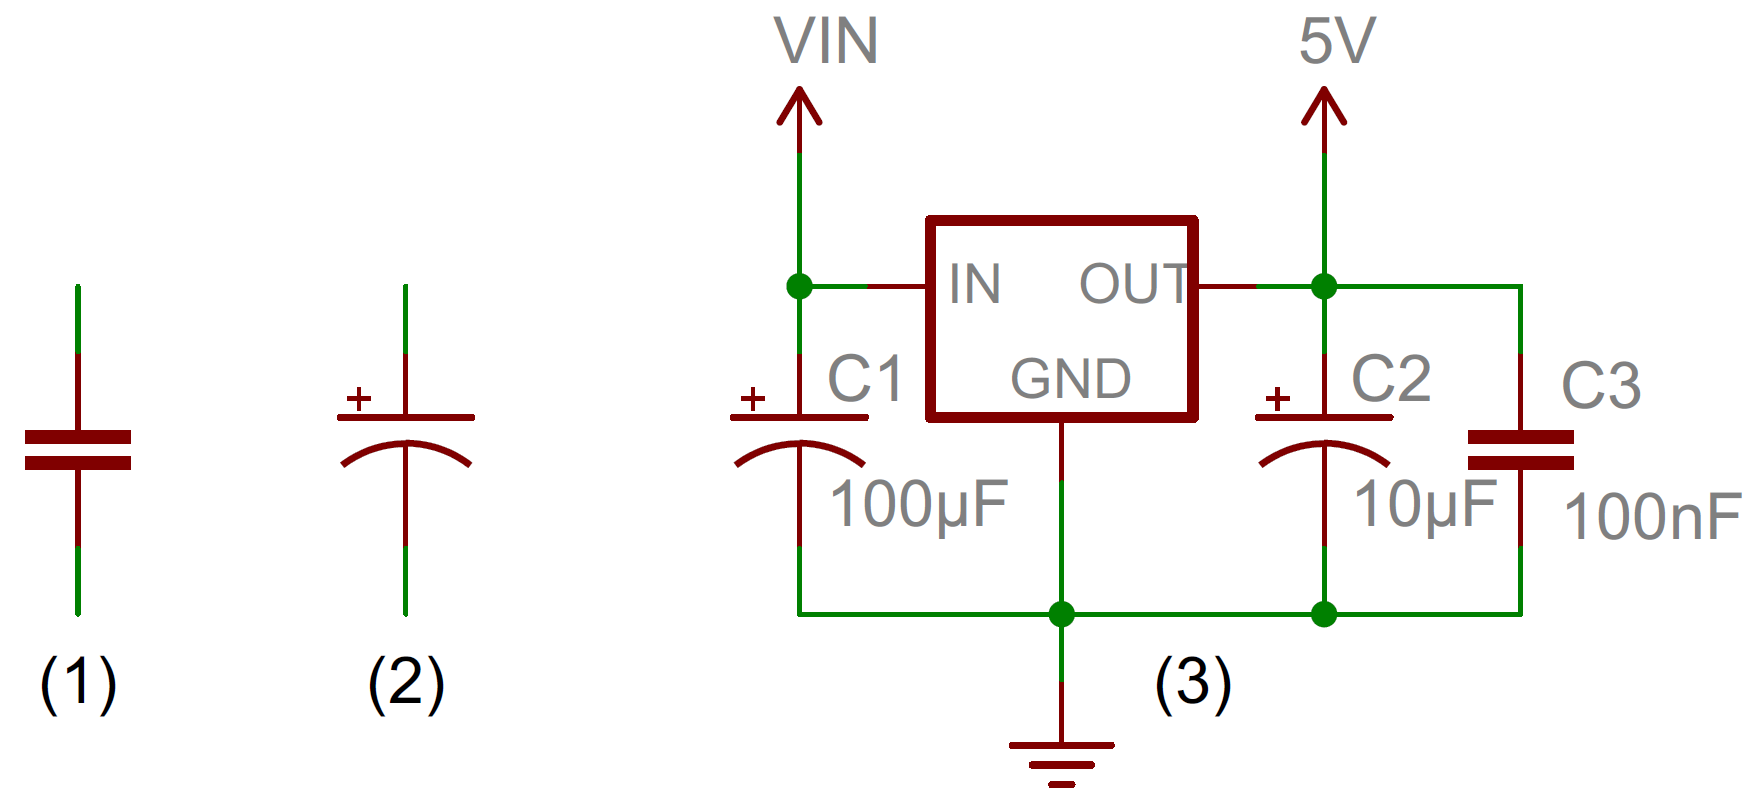 Capacitors Short Circuit Damage Find A Guide With Wiring Diagram Images Capacitor Symbols